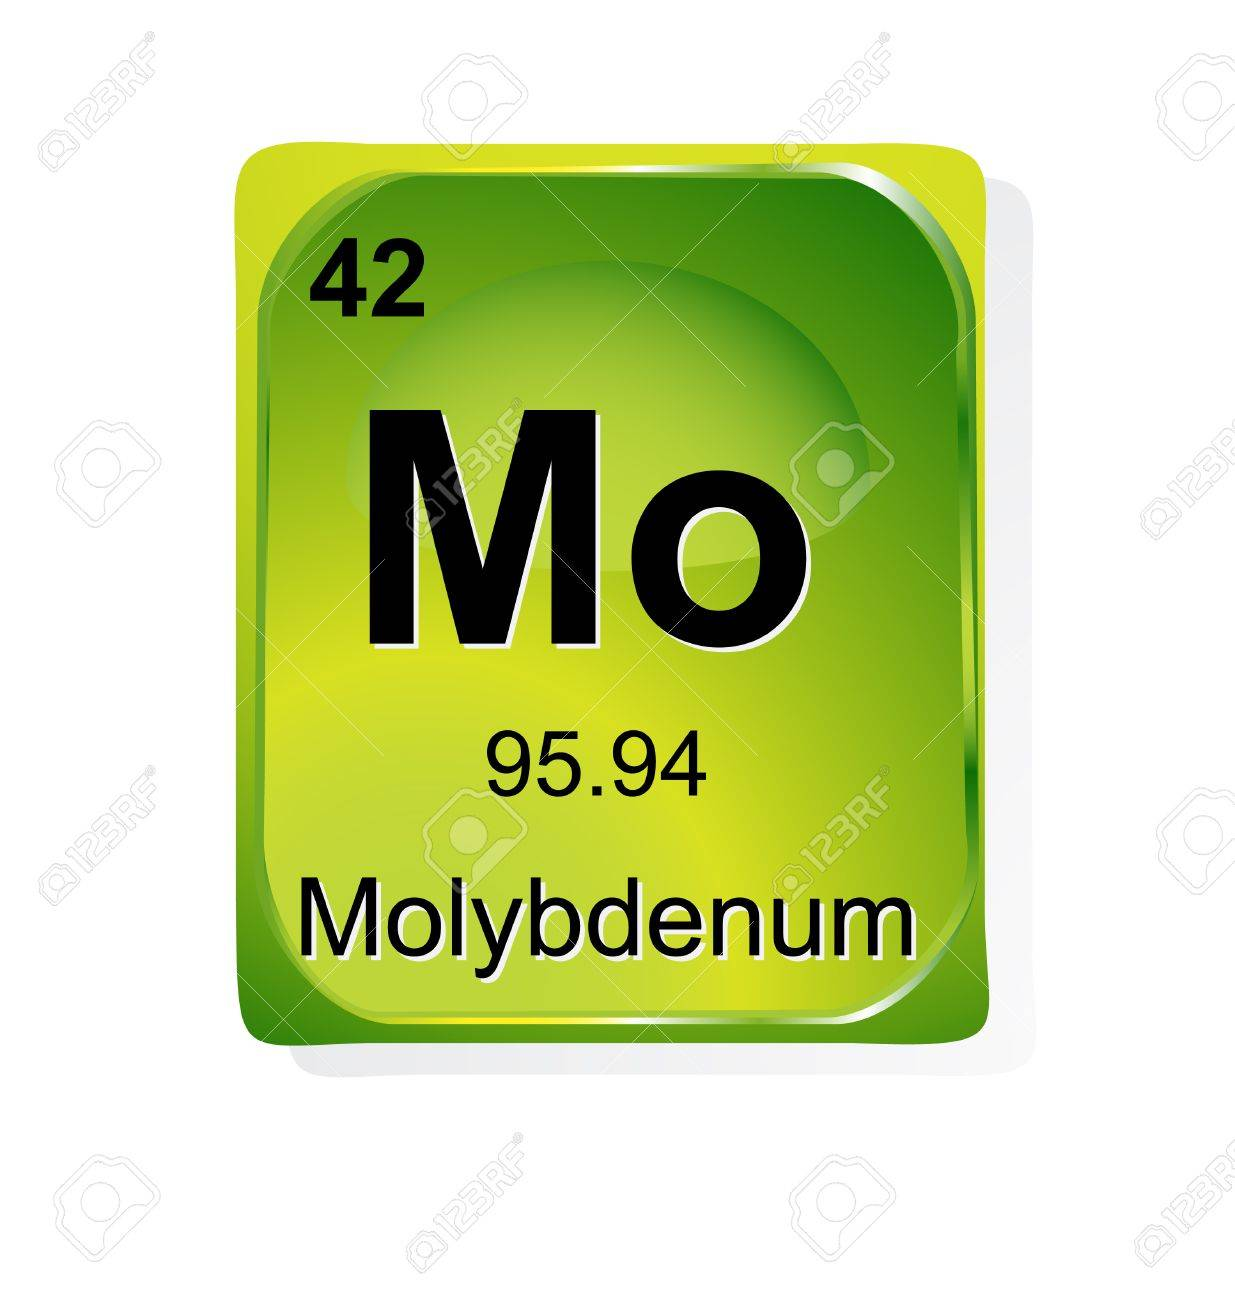 Molybdenum chemical element with atomic number symbol and weight molybdenum chemical element with atomic number symbol and weight stock vector 24509767 buycottarizona Choice Image